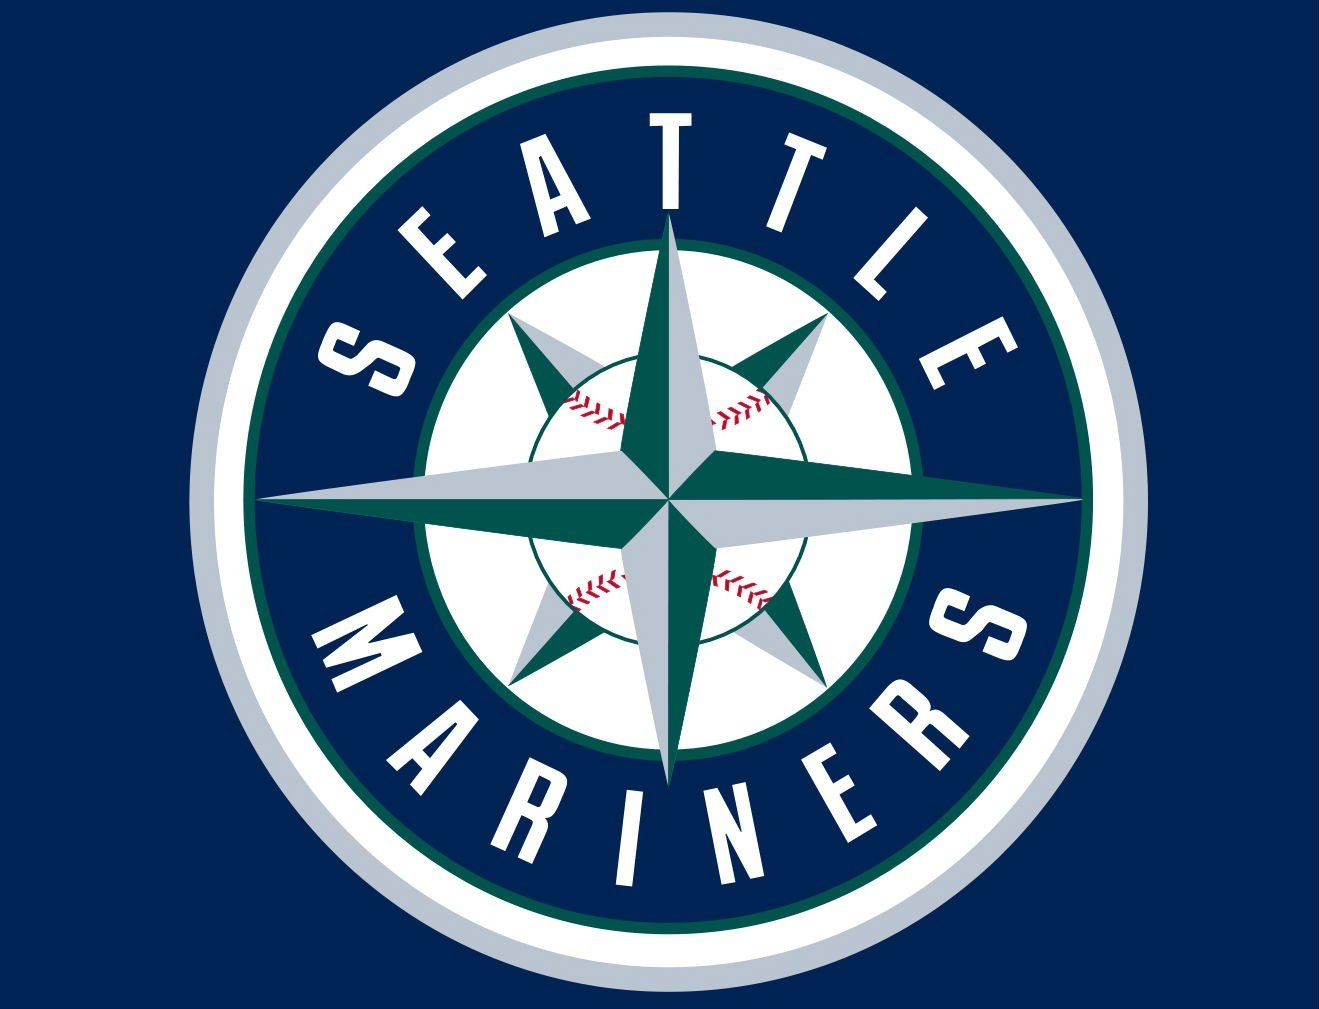 The Mariners have now lost three in a row.